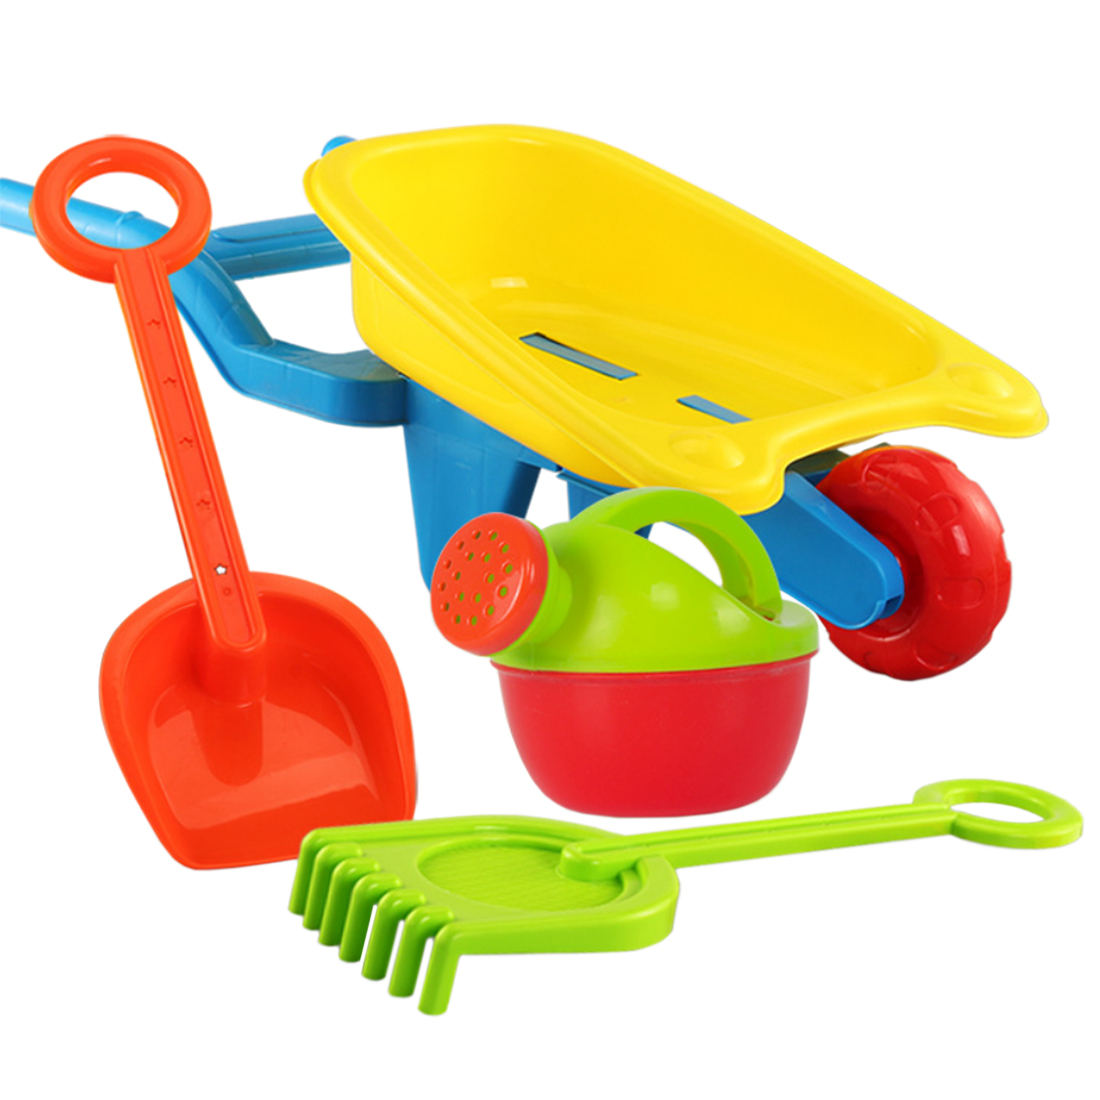 4Pcs Children Pretend Play Beach Sand Toy Set With Trolley Watering Can Shovel Rake Water Fun For Children Kids - Wheelbarrow L